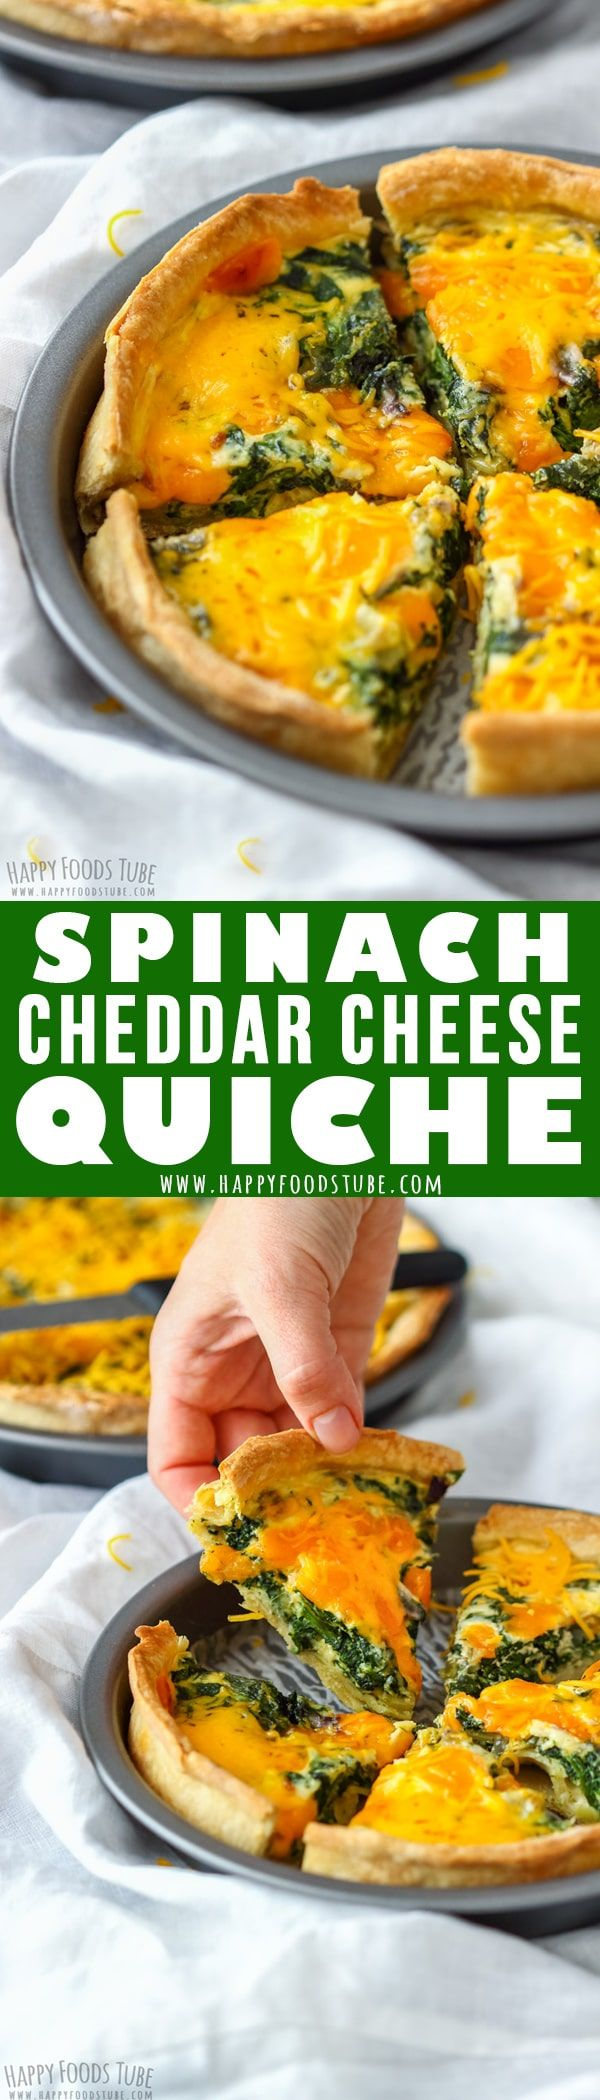 Spinach and Cheddar Quiche is a meat-free pie that can be served as appetizer as well as main dish. Perfect for breakfast, lunch or dinner. #quiche #vegetarian #spinach #cheddar #cheese #howtomake #homemade #recipe #french #food #cooking #crust #breakfast #lunch #dinner #meatless #meatfree via @happyfoodstube